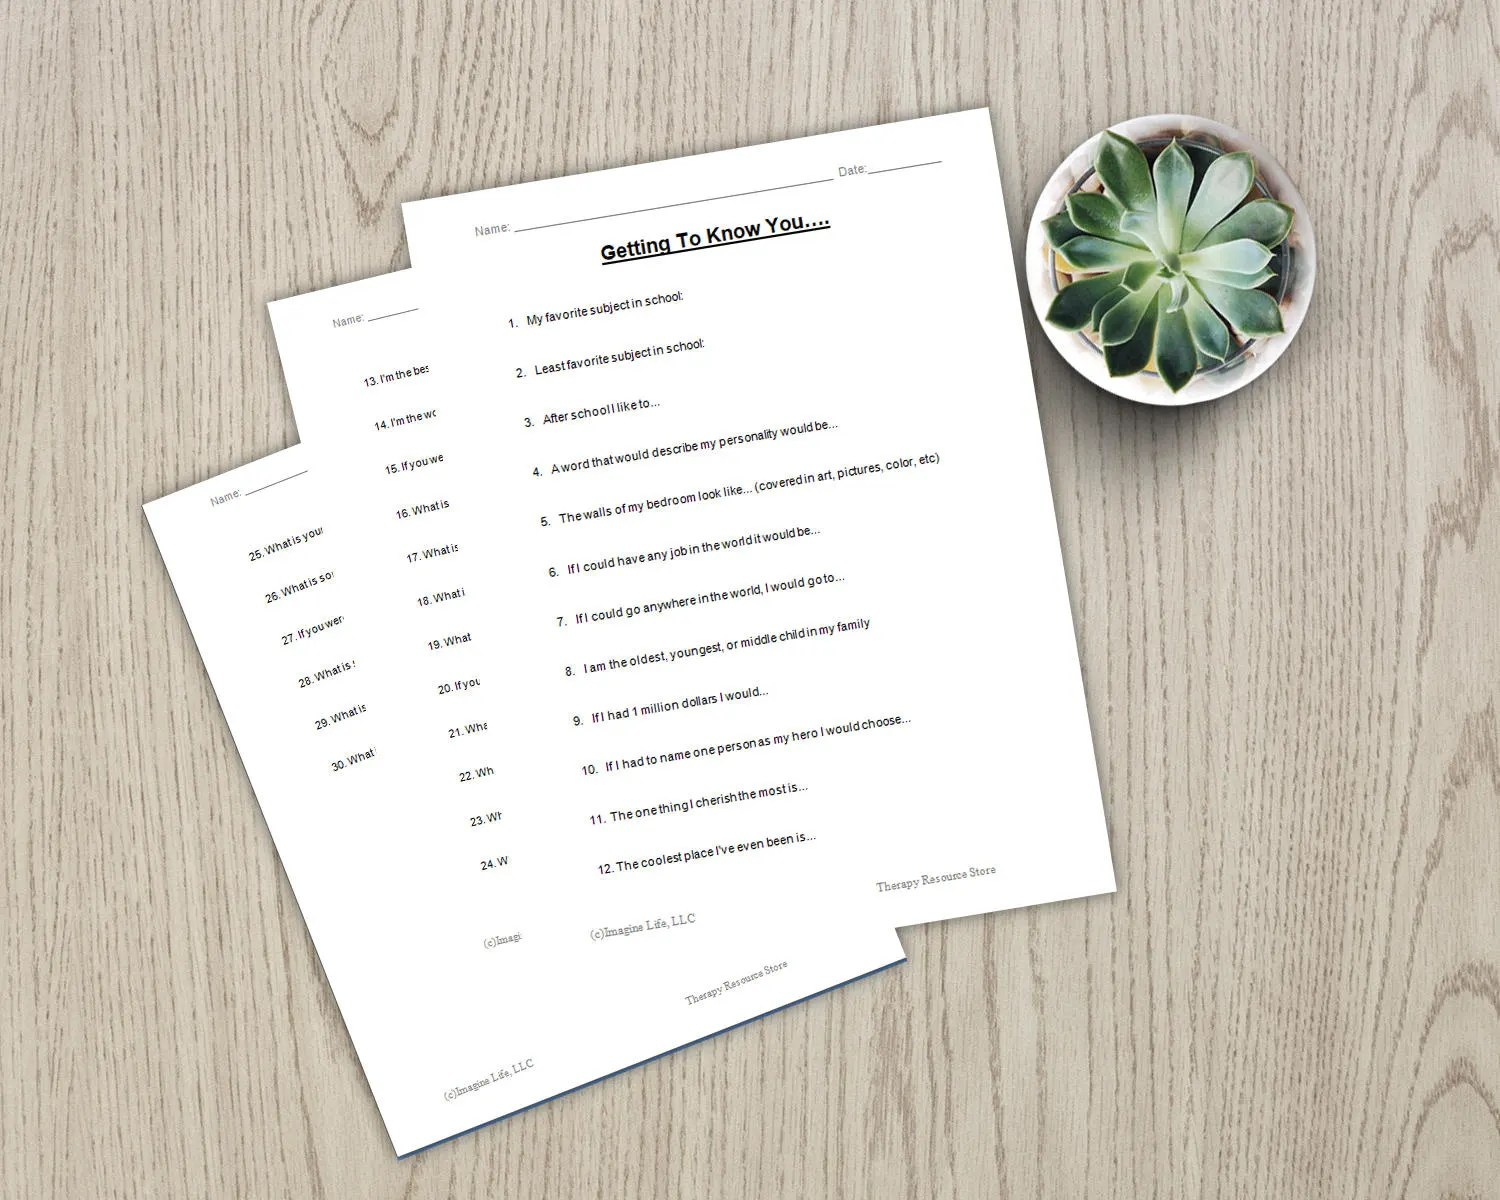 Counseling Therapy Getting To Know You Questionnaire For